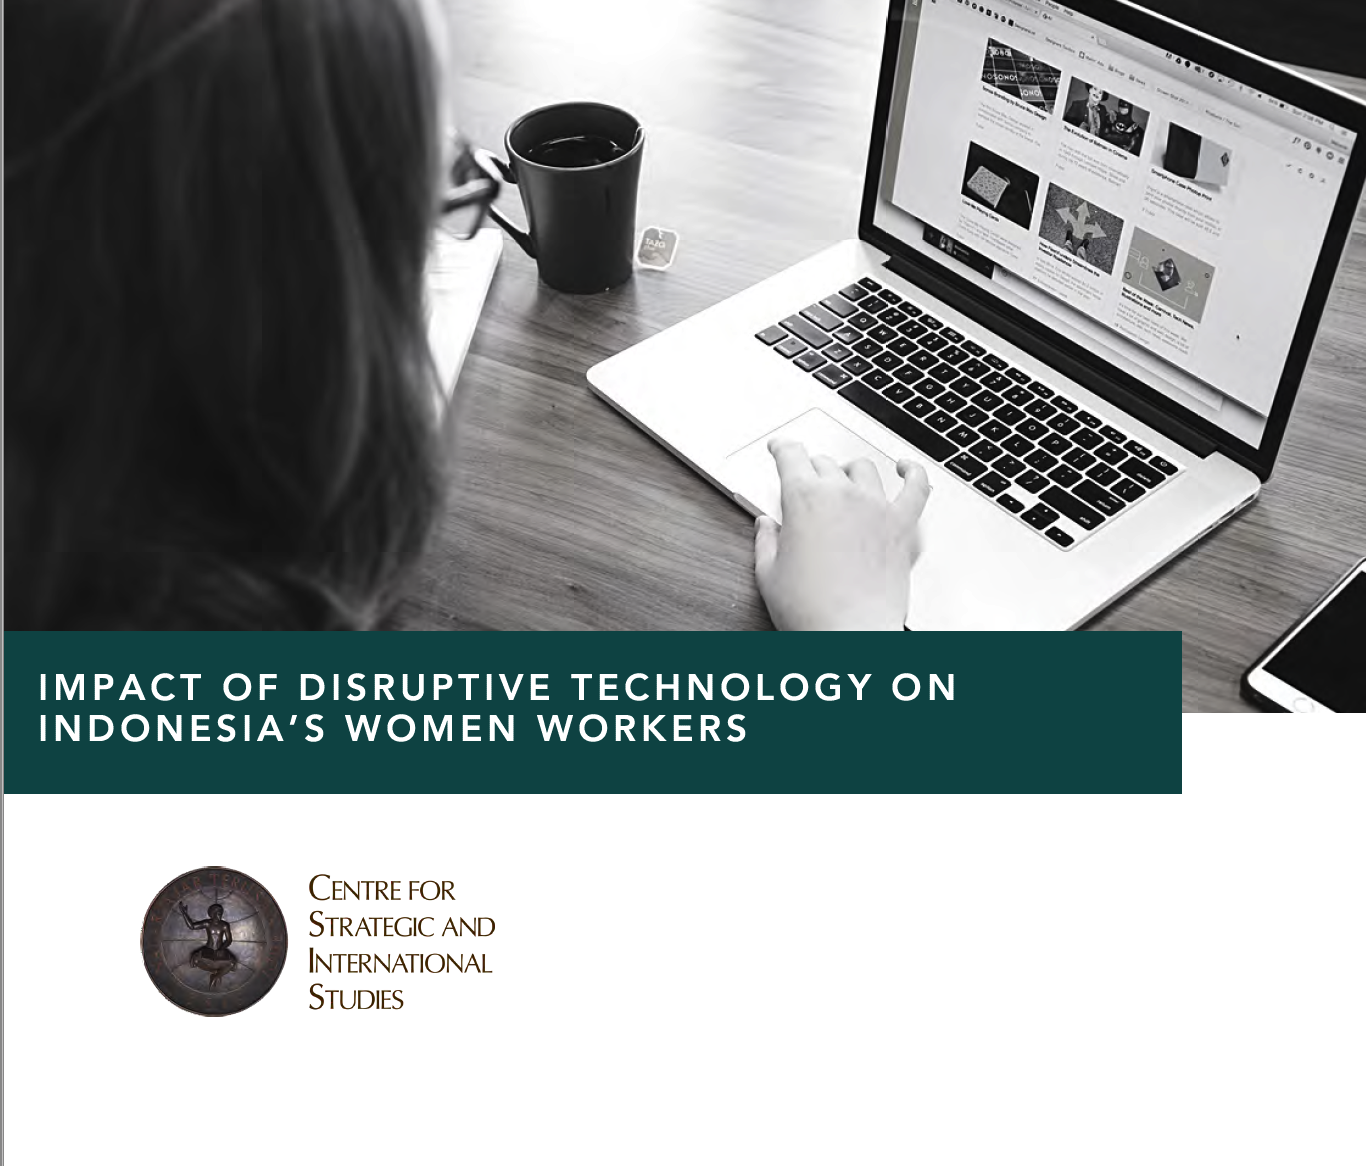 Impact of Disruptive Technology on Indonesia's Women Workers